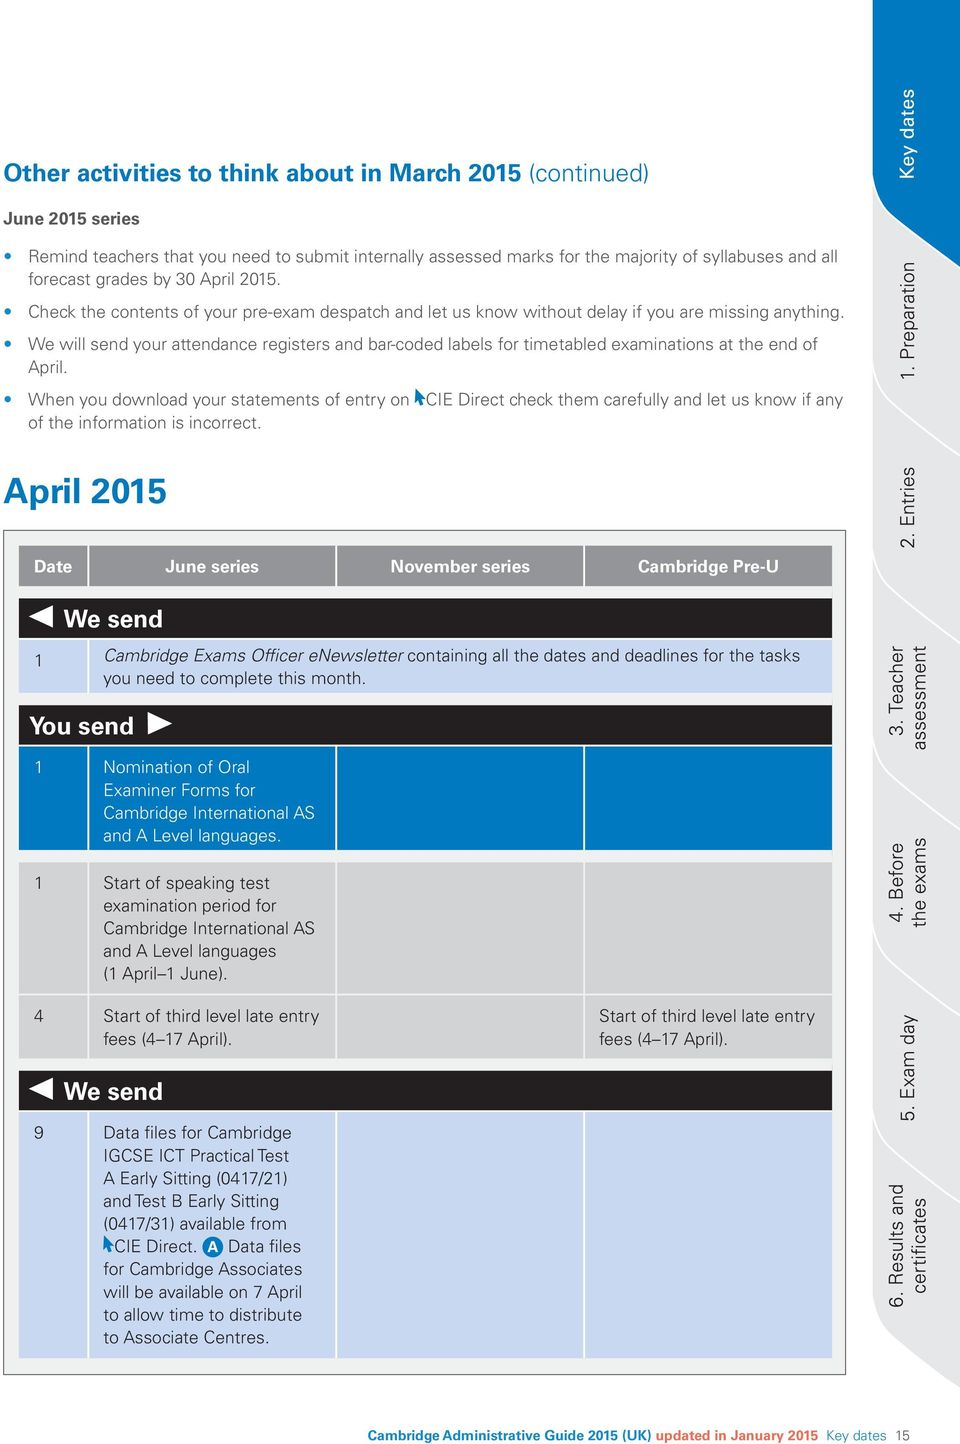 We will send your attendance registers and bar-coded labels for timetabled examinations at the end of April.